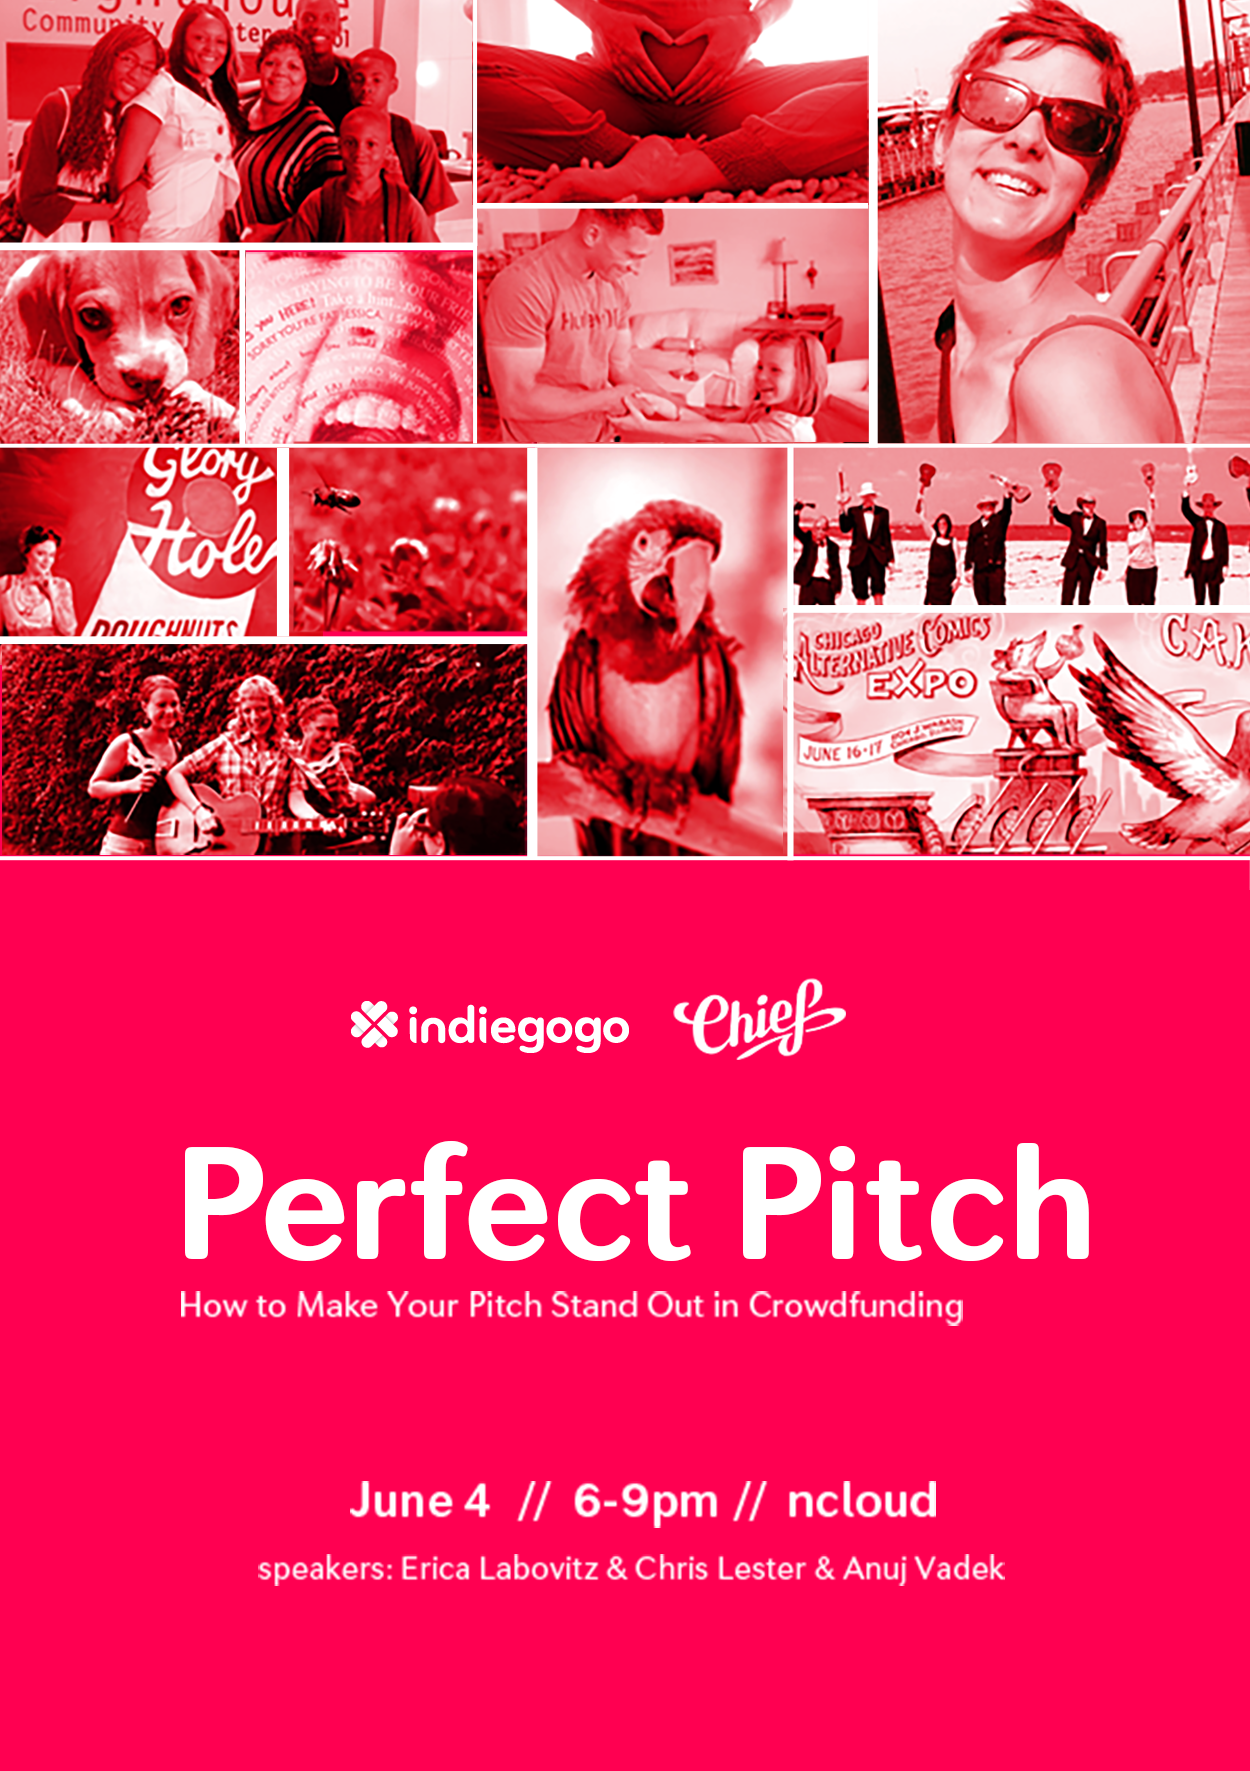 Indiegogo Event Poster